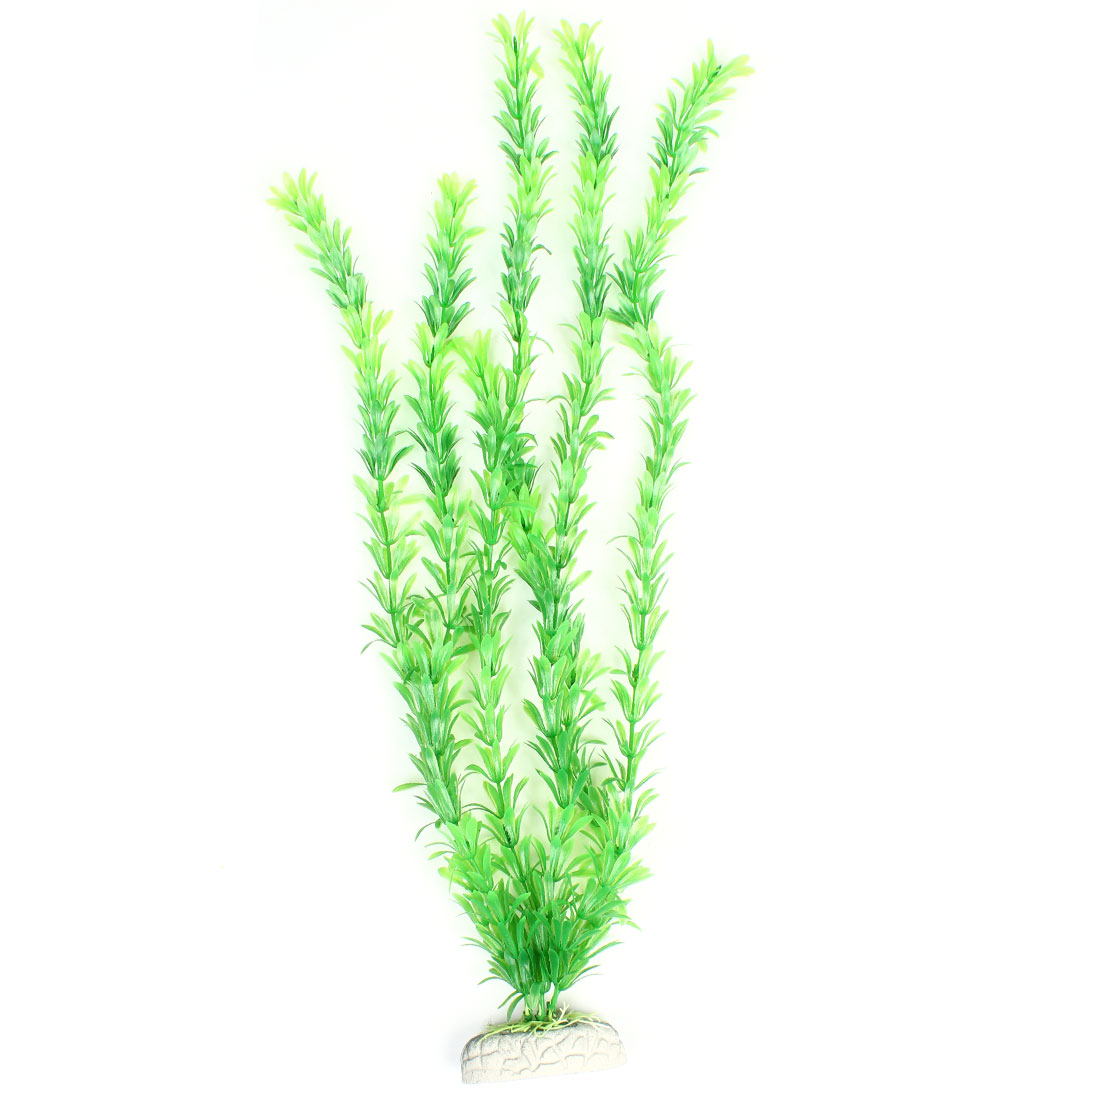 "21.7"" Height Green Manmade Plastic Plant Grass Decoration for Fish Tank"